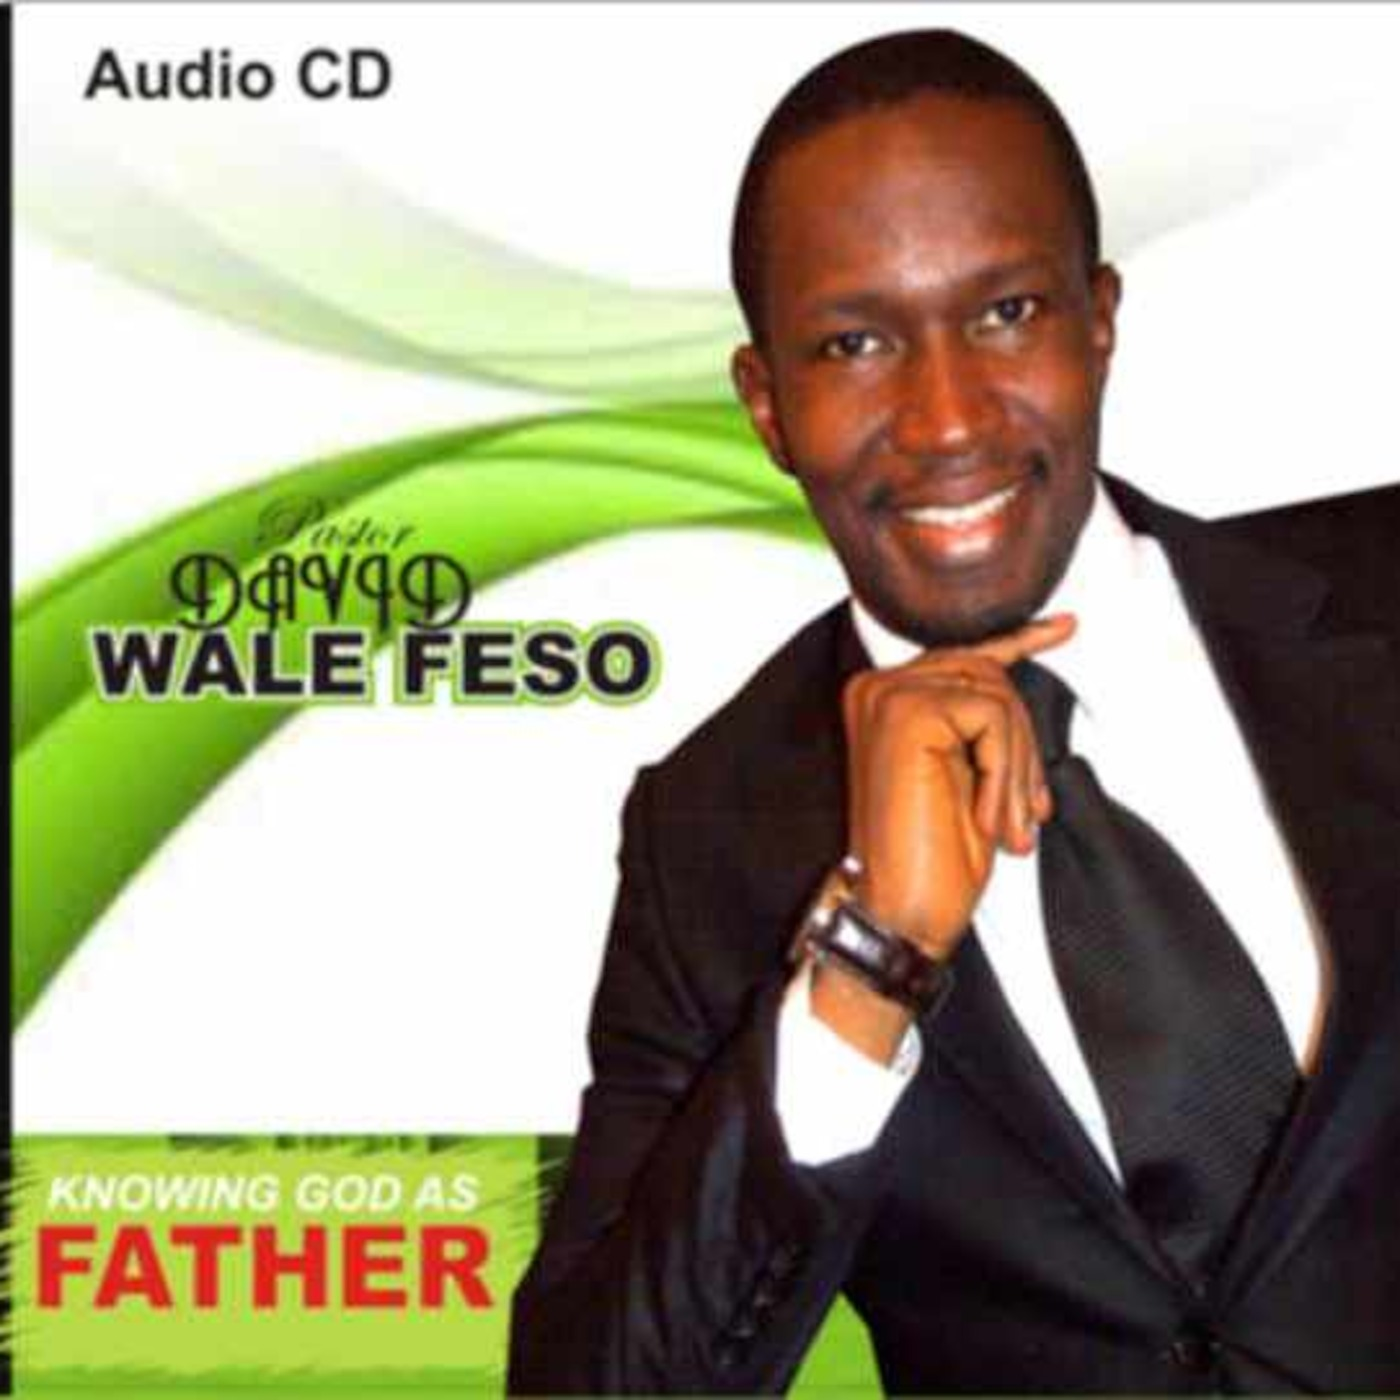 David Wale Feso's Podcast